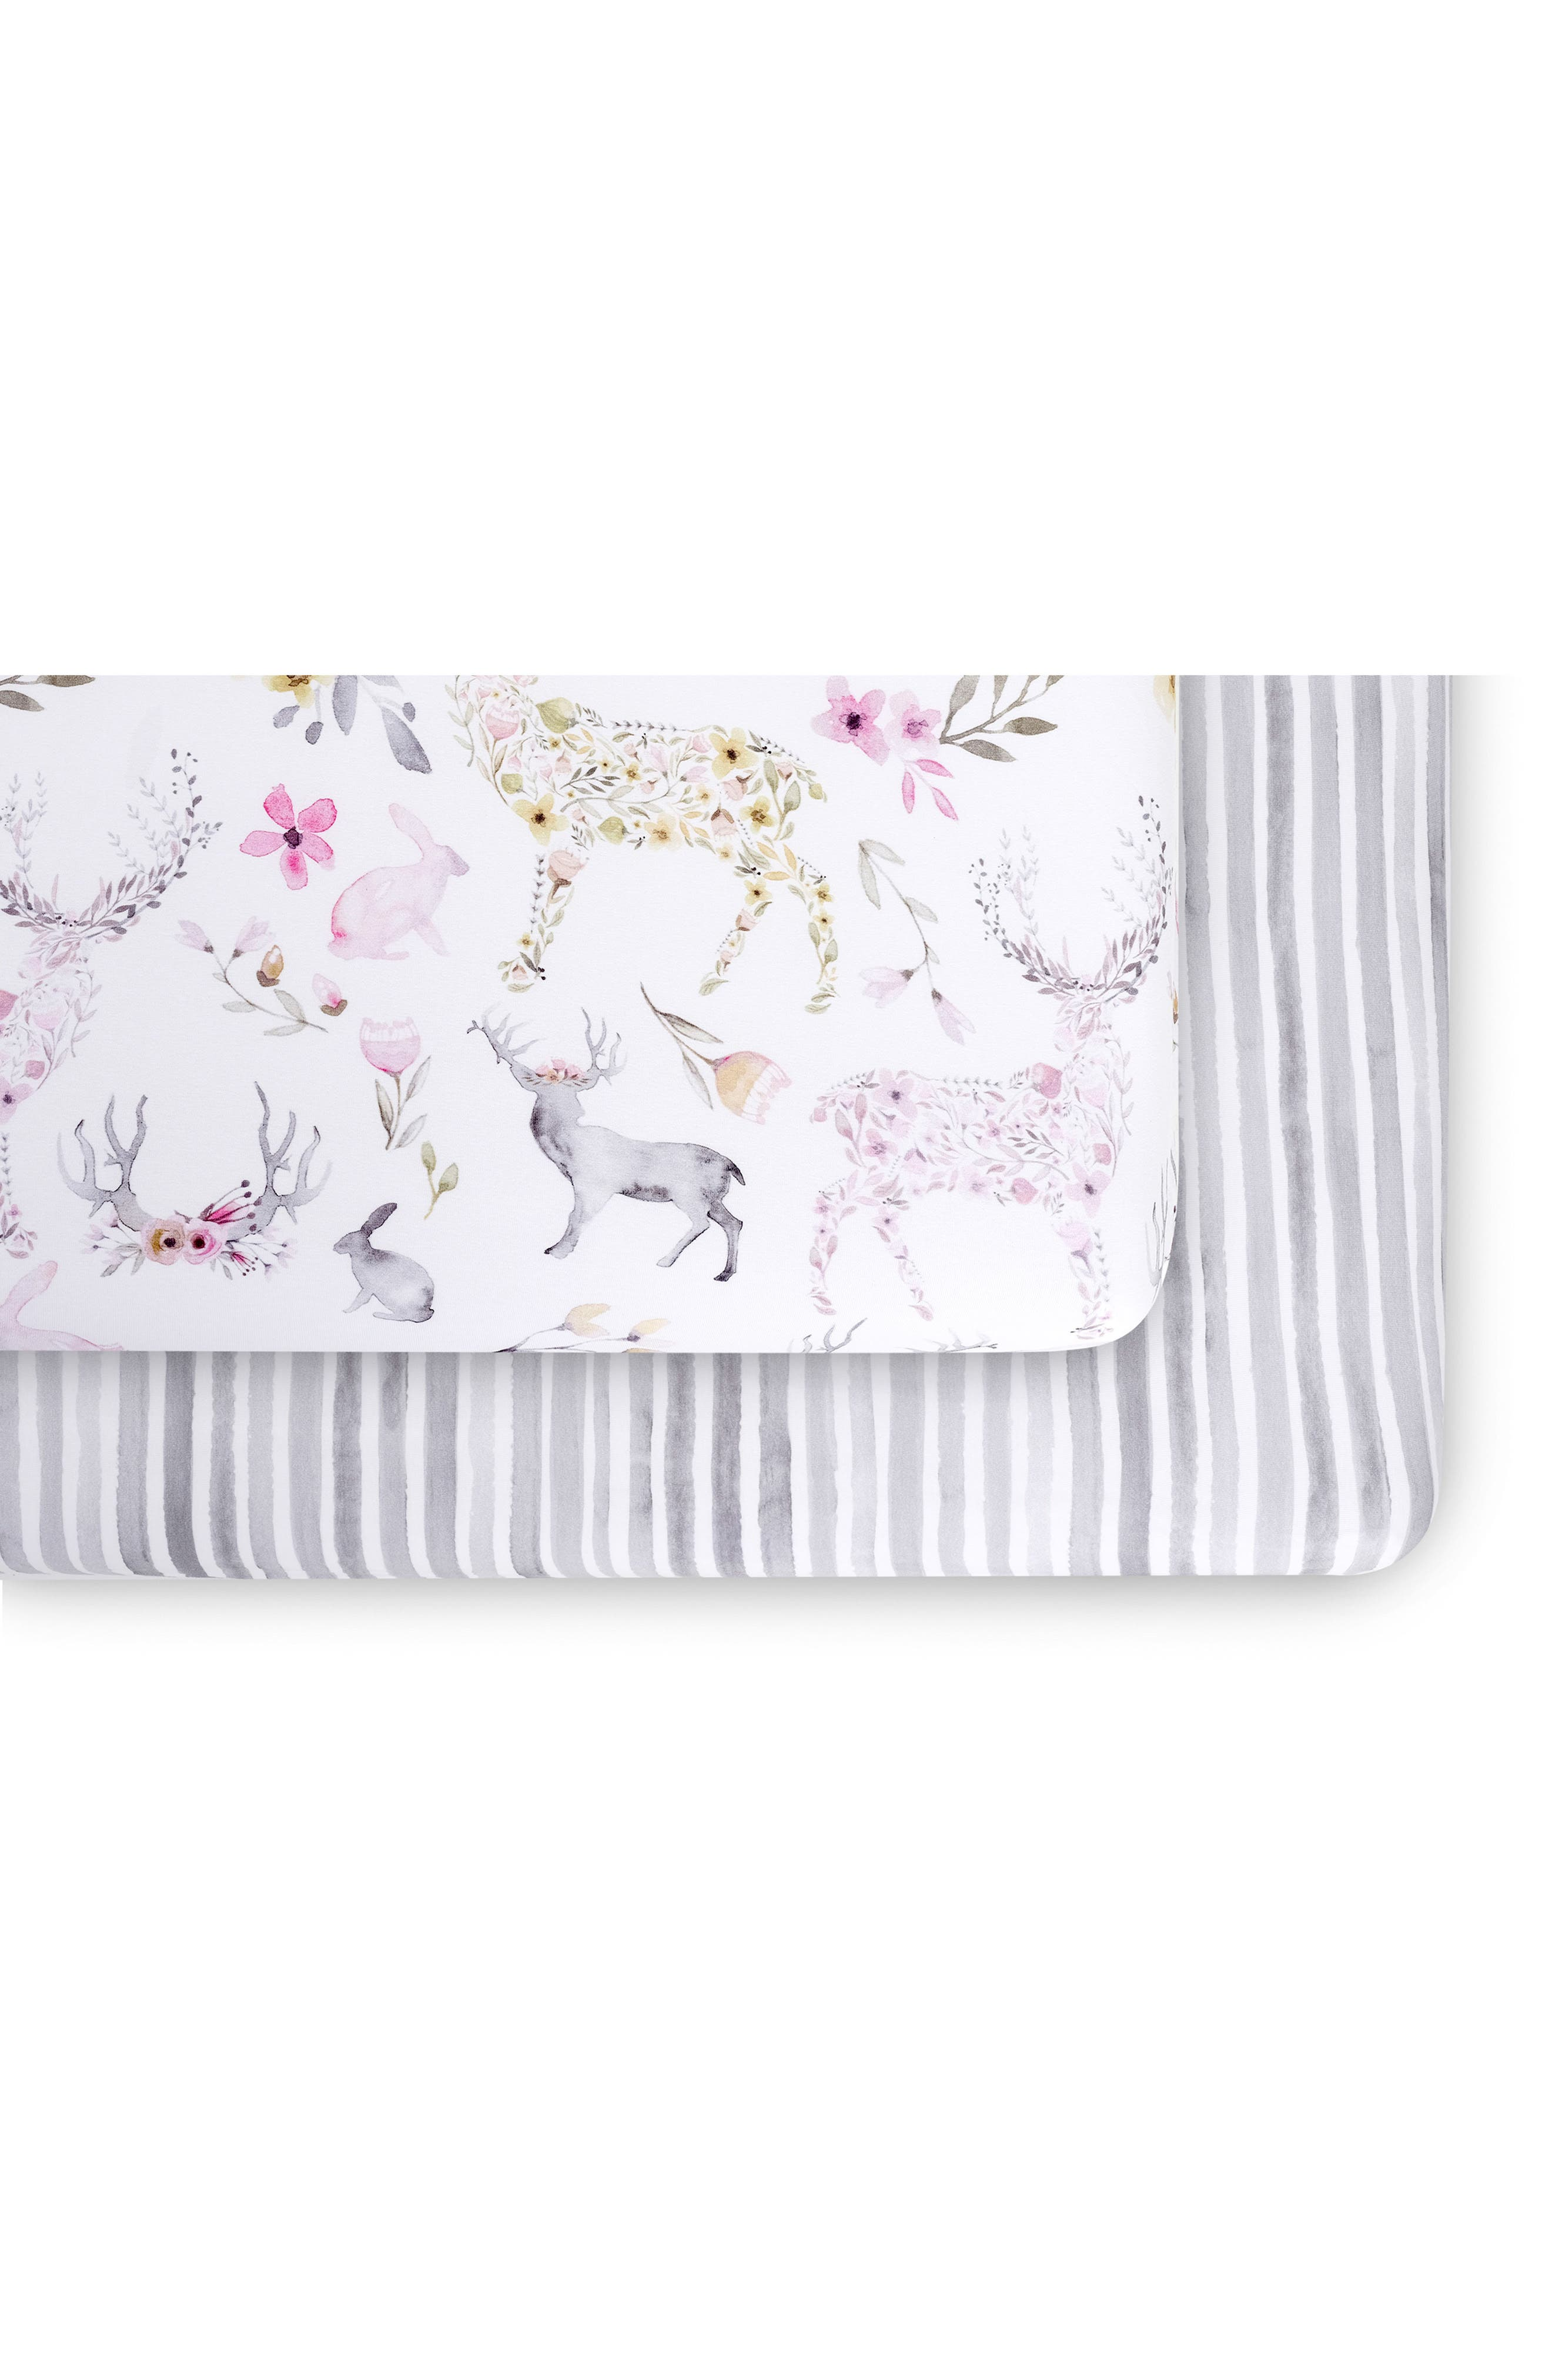 OILO 2-Pack Fitted Crib Sheets, Main, color, STONE FAWN